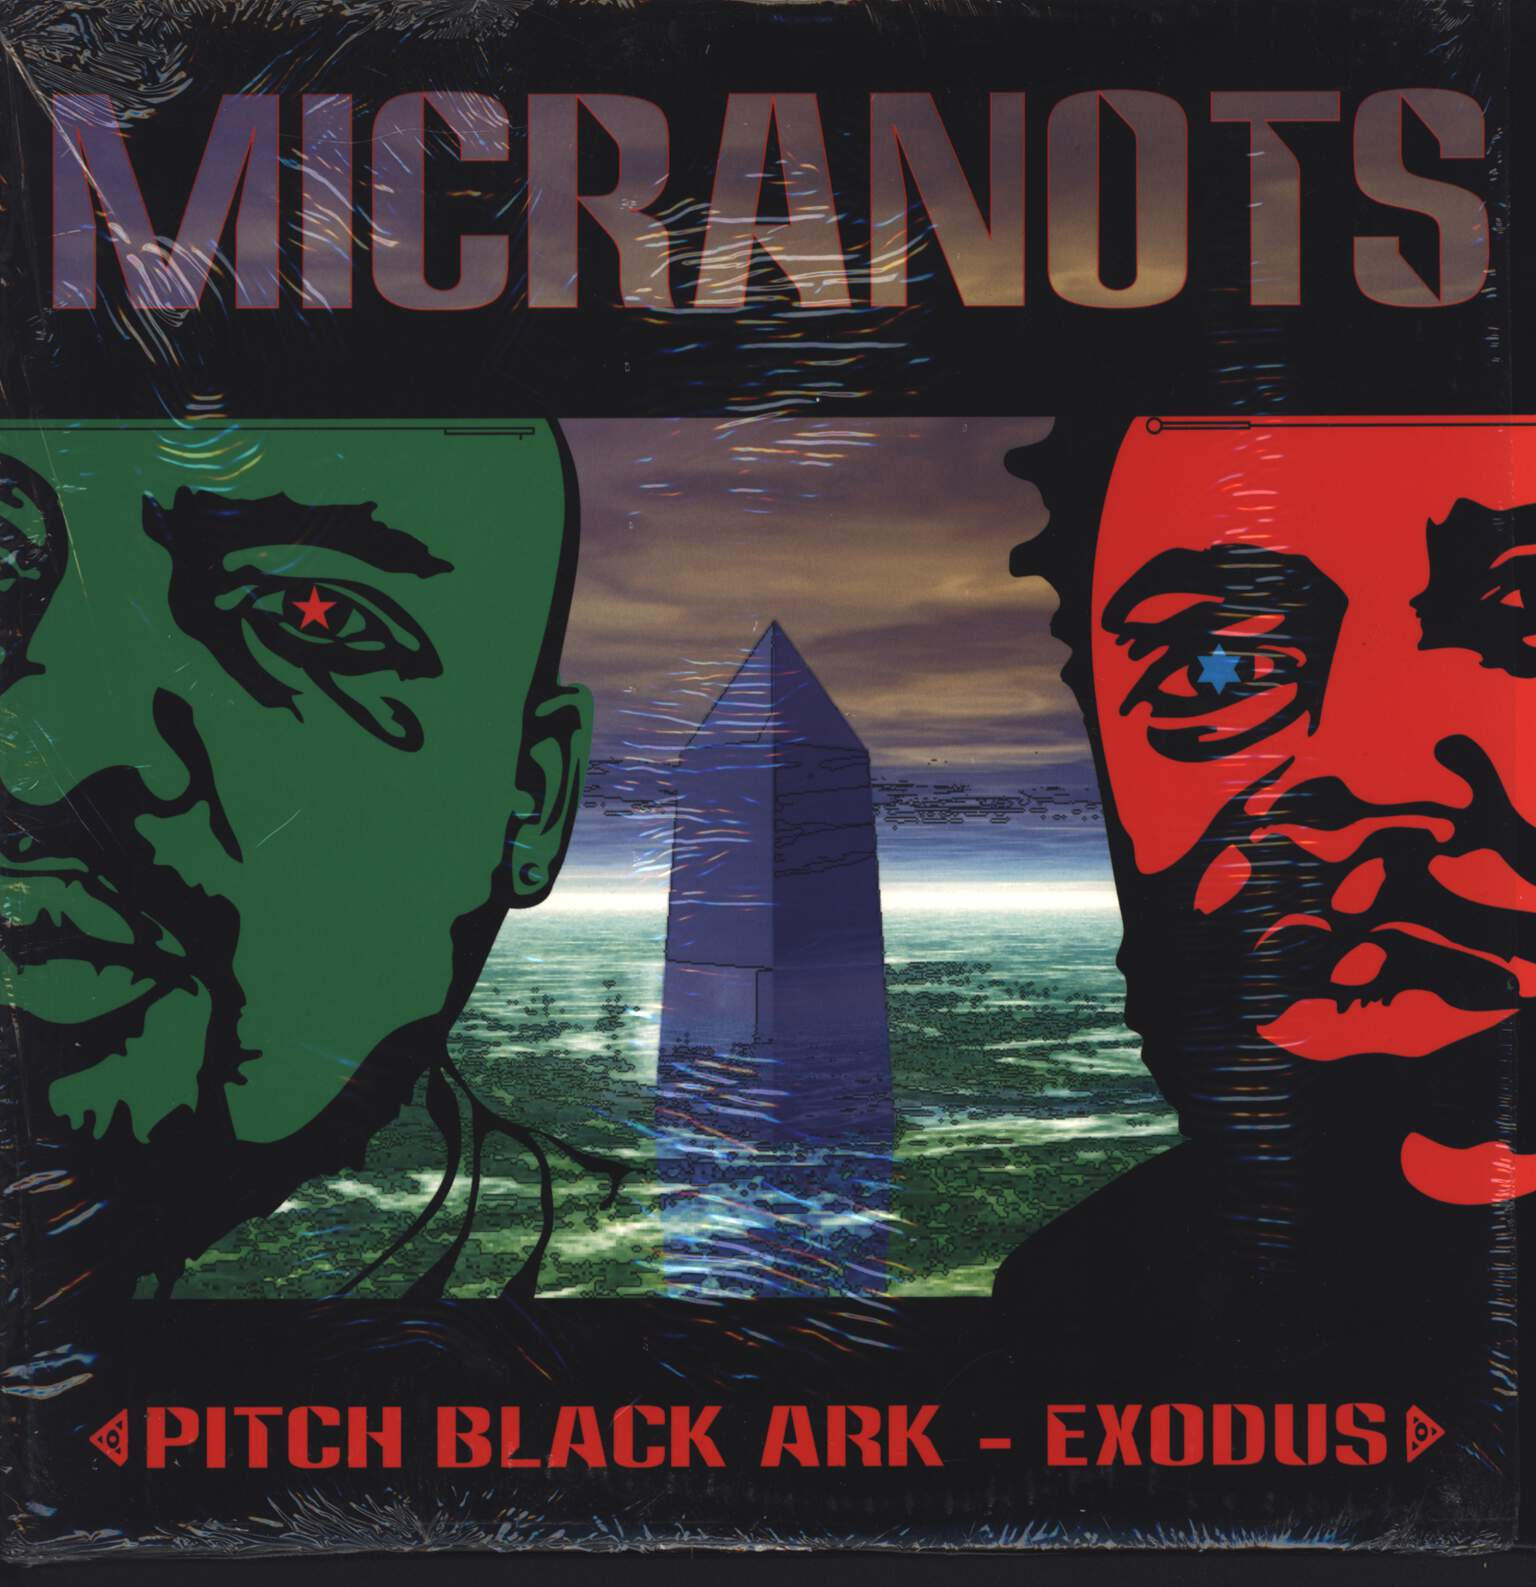 "Micranots: Pitch Black Ark / Exodus, 12"" Maxi Single (Vinyl)"